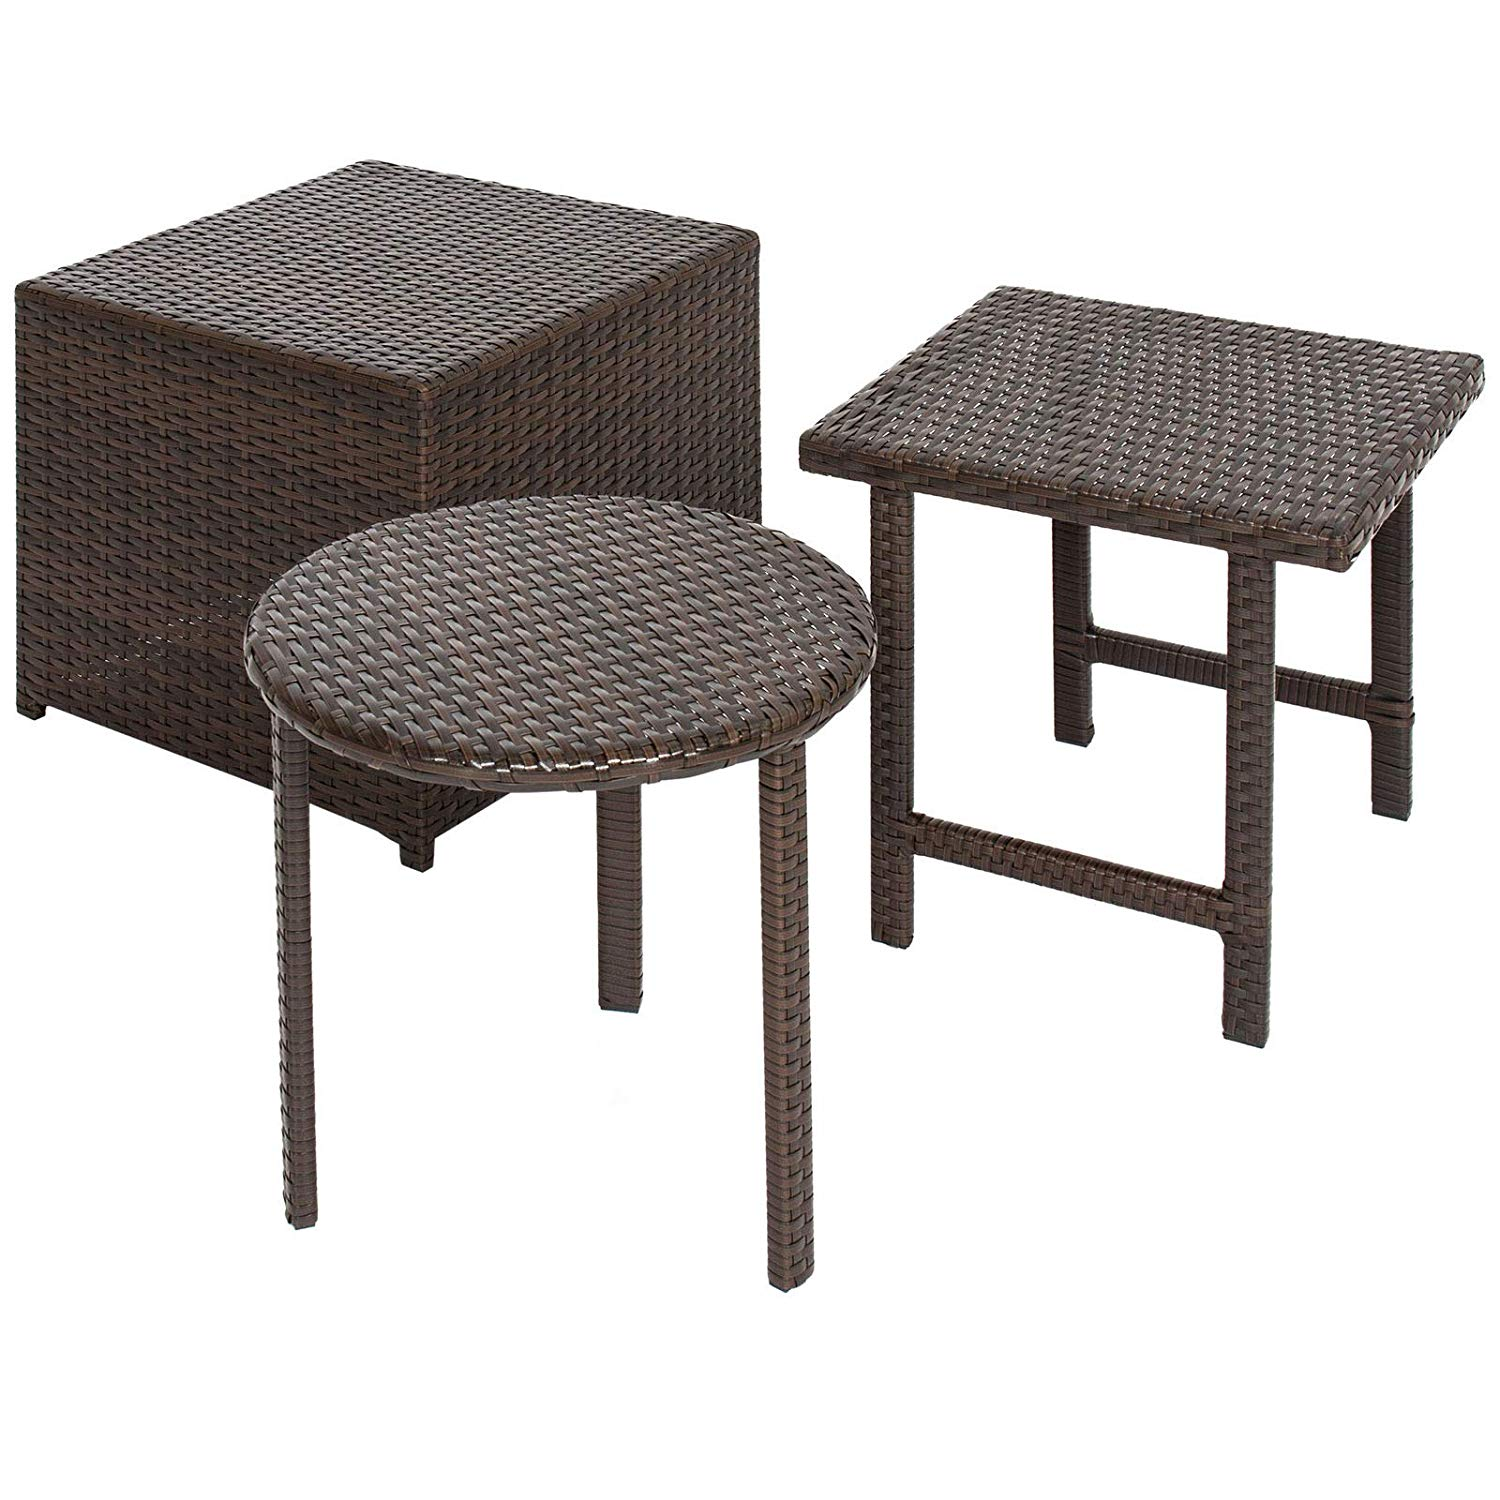 pcs outdoor wicker side table set and ott garden decor patio deck backyard yard porches poolside pool home furniture decoration lightweight metal teal clear plastic mid century